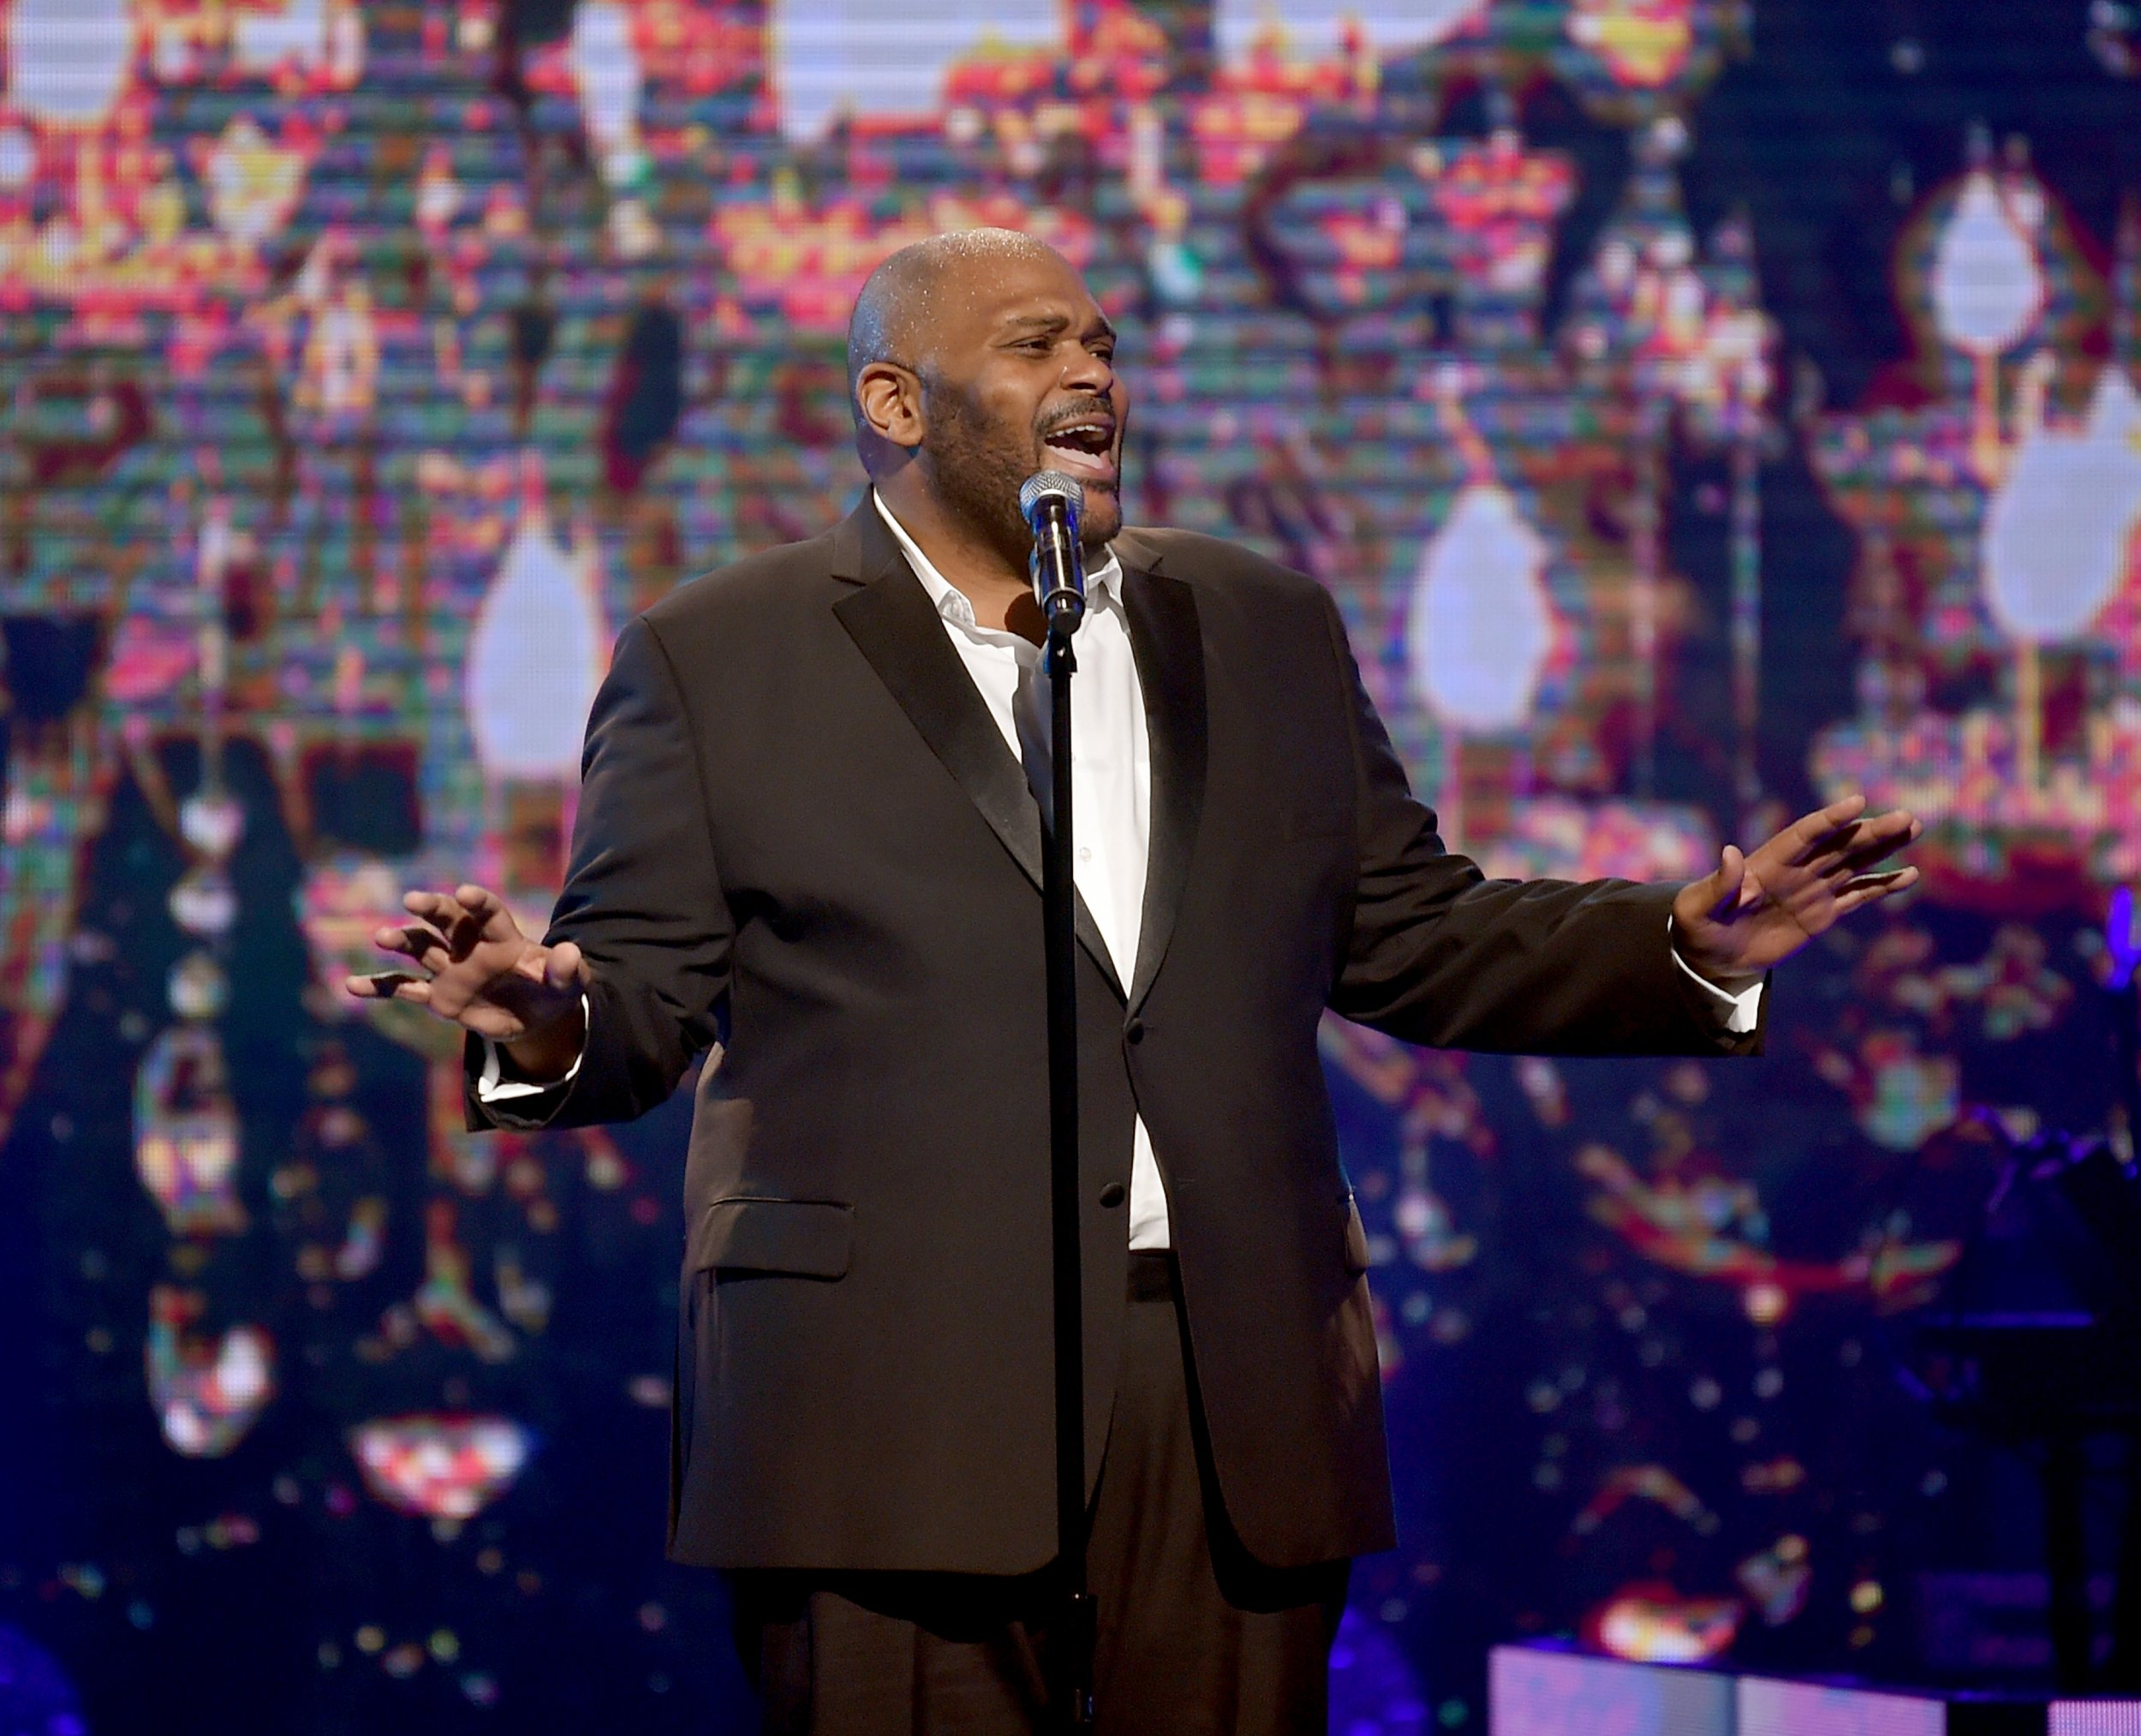 Where Are Previous 'American Idol' Winners Now? - Ruben Studdard